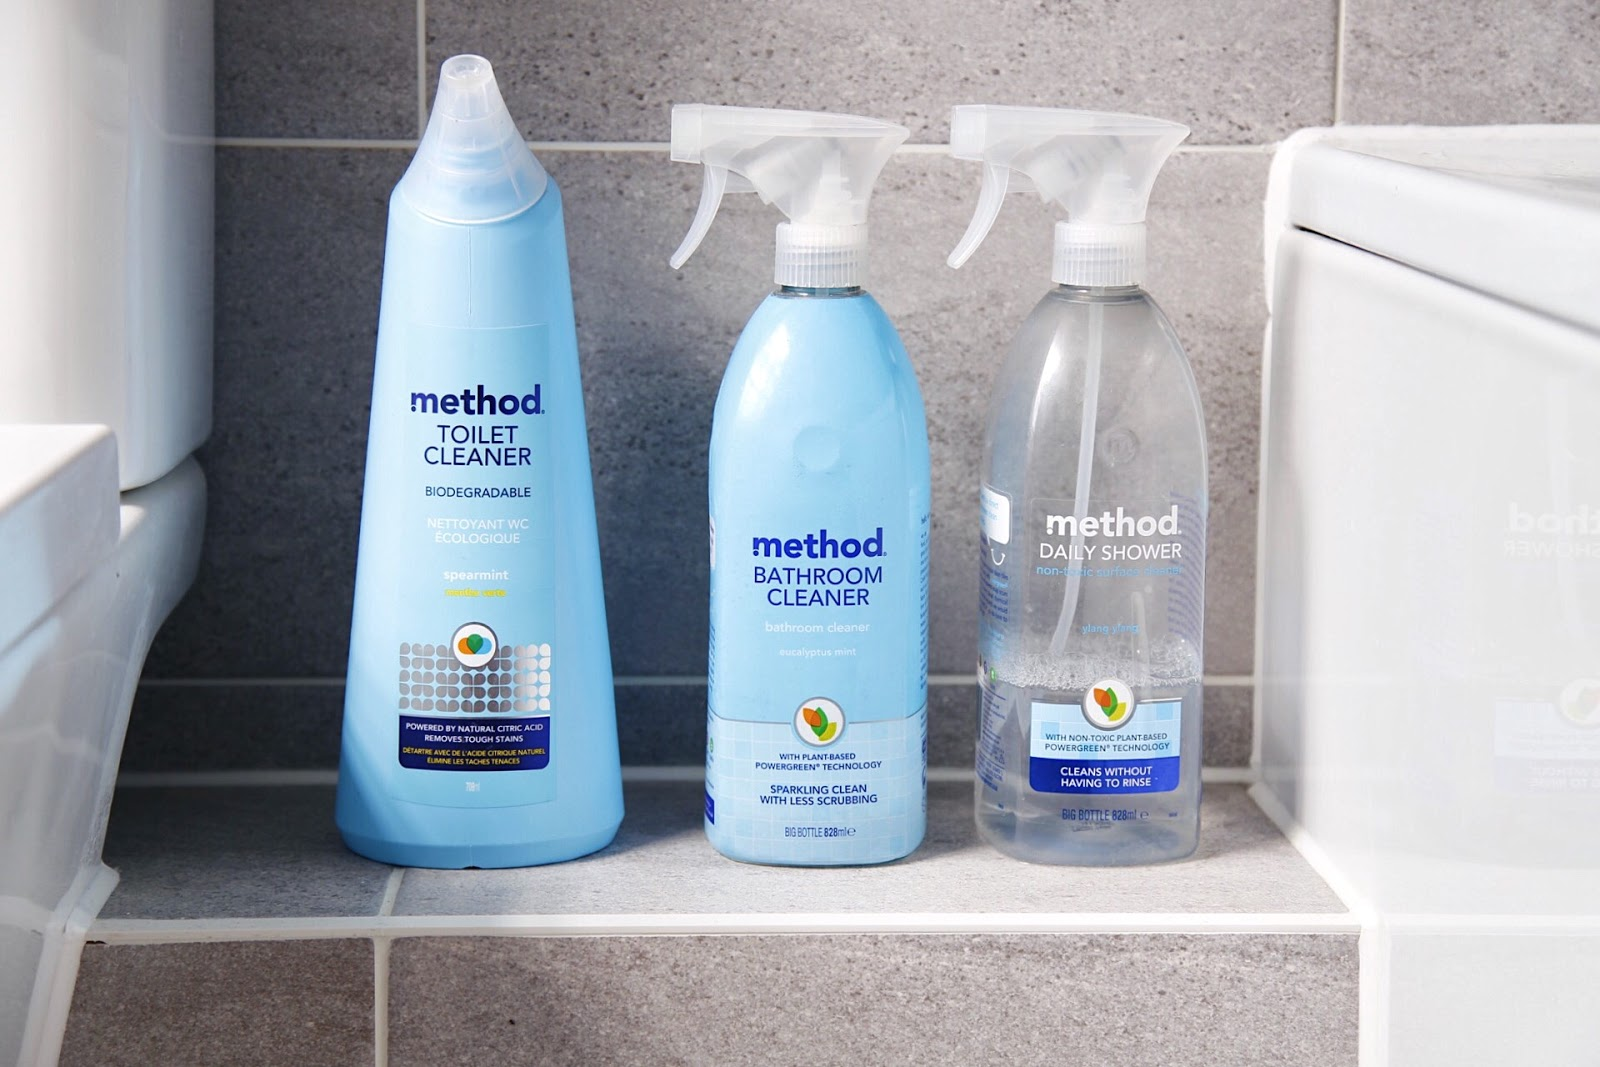 Method Bathroom Household cleaners with grey tile background.